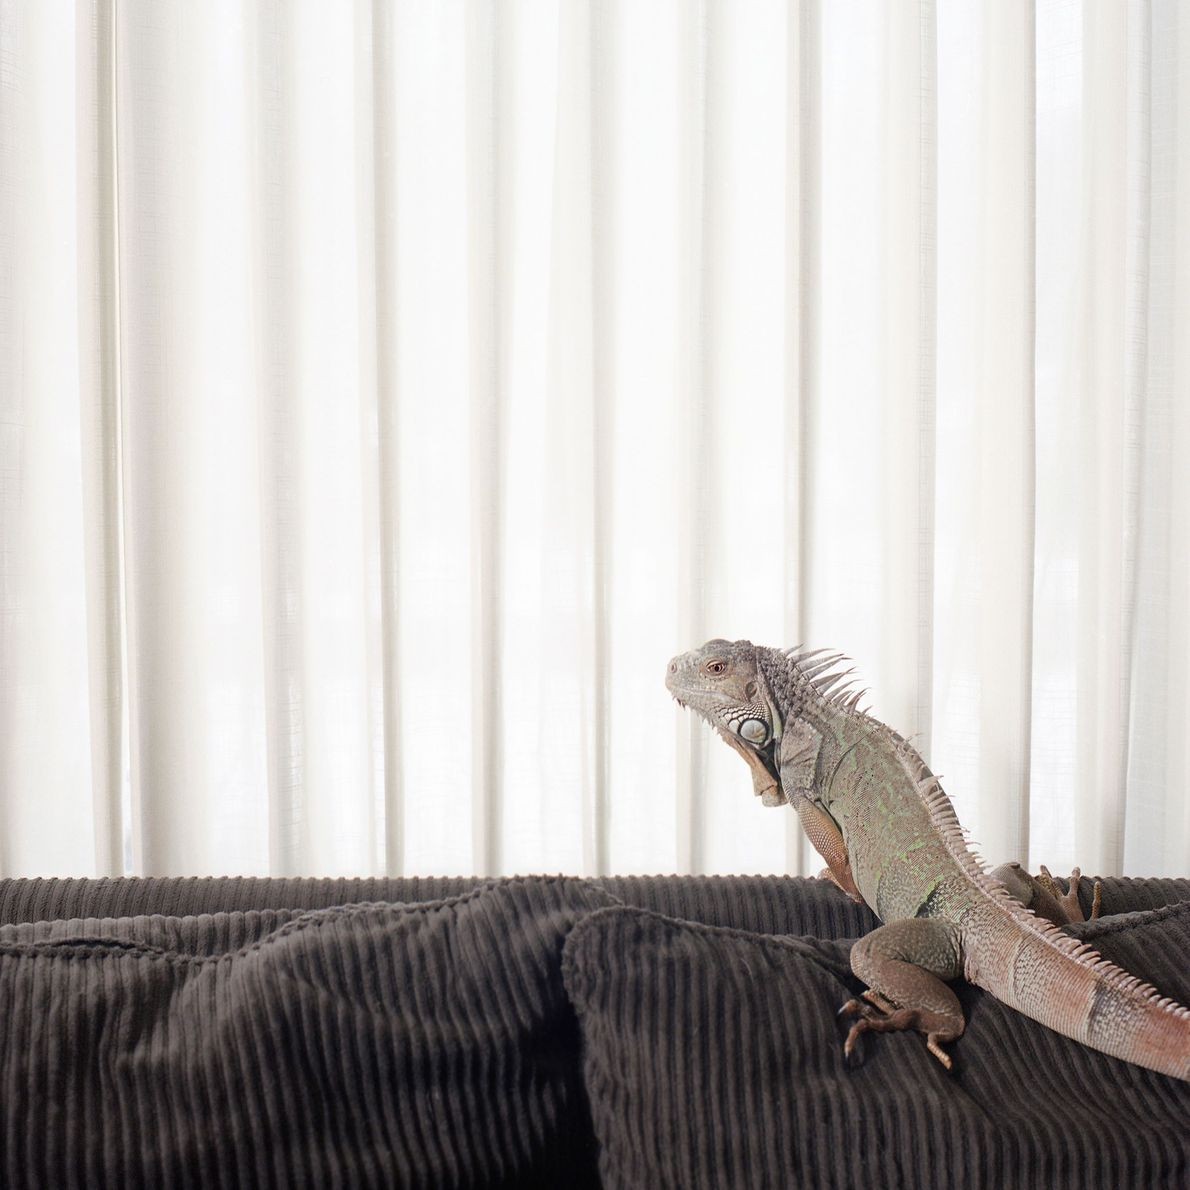 An iguana named Jade climbs the household couch. Iguanas are tropical lizards native to the Americas ...